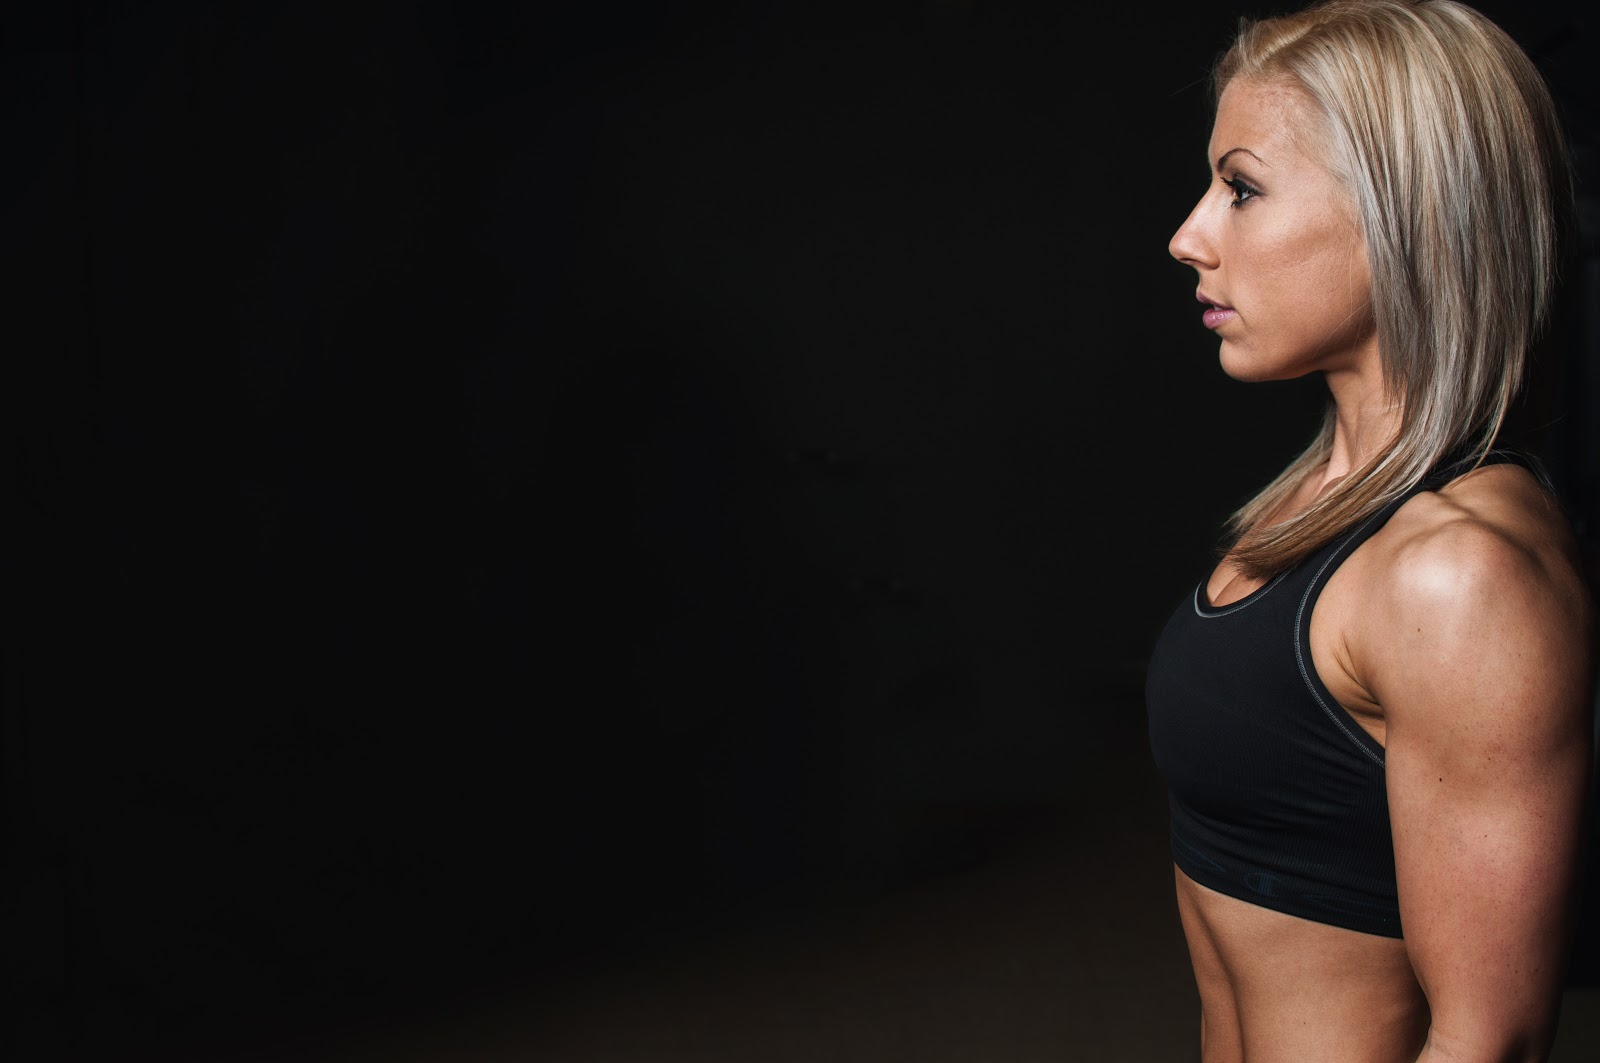 Side view of strong, fit woman against black background looking focused and determined.